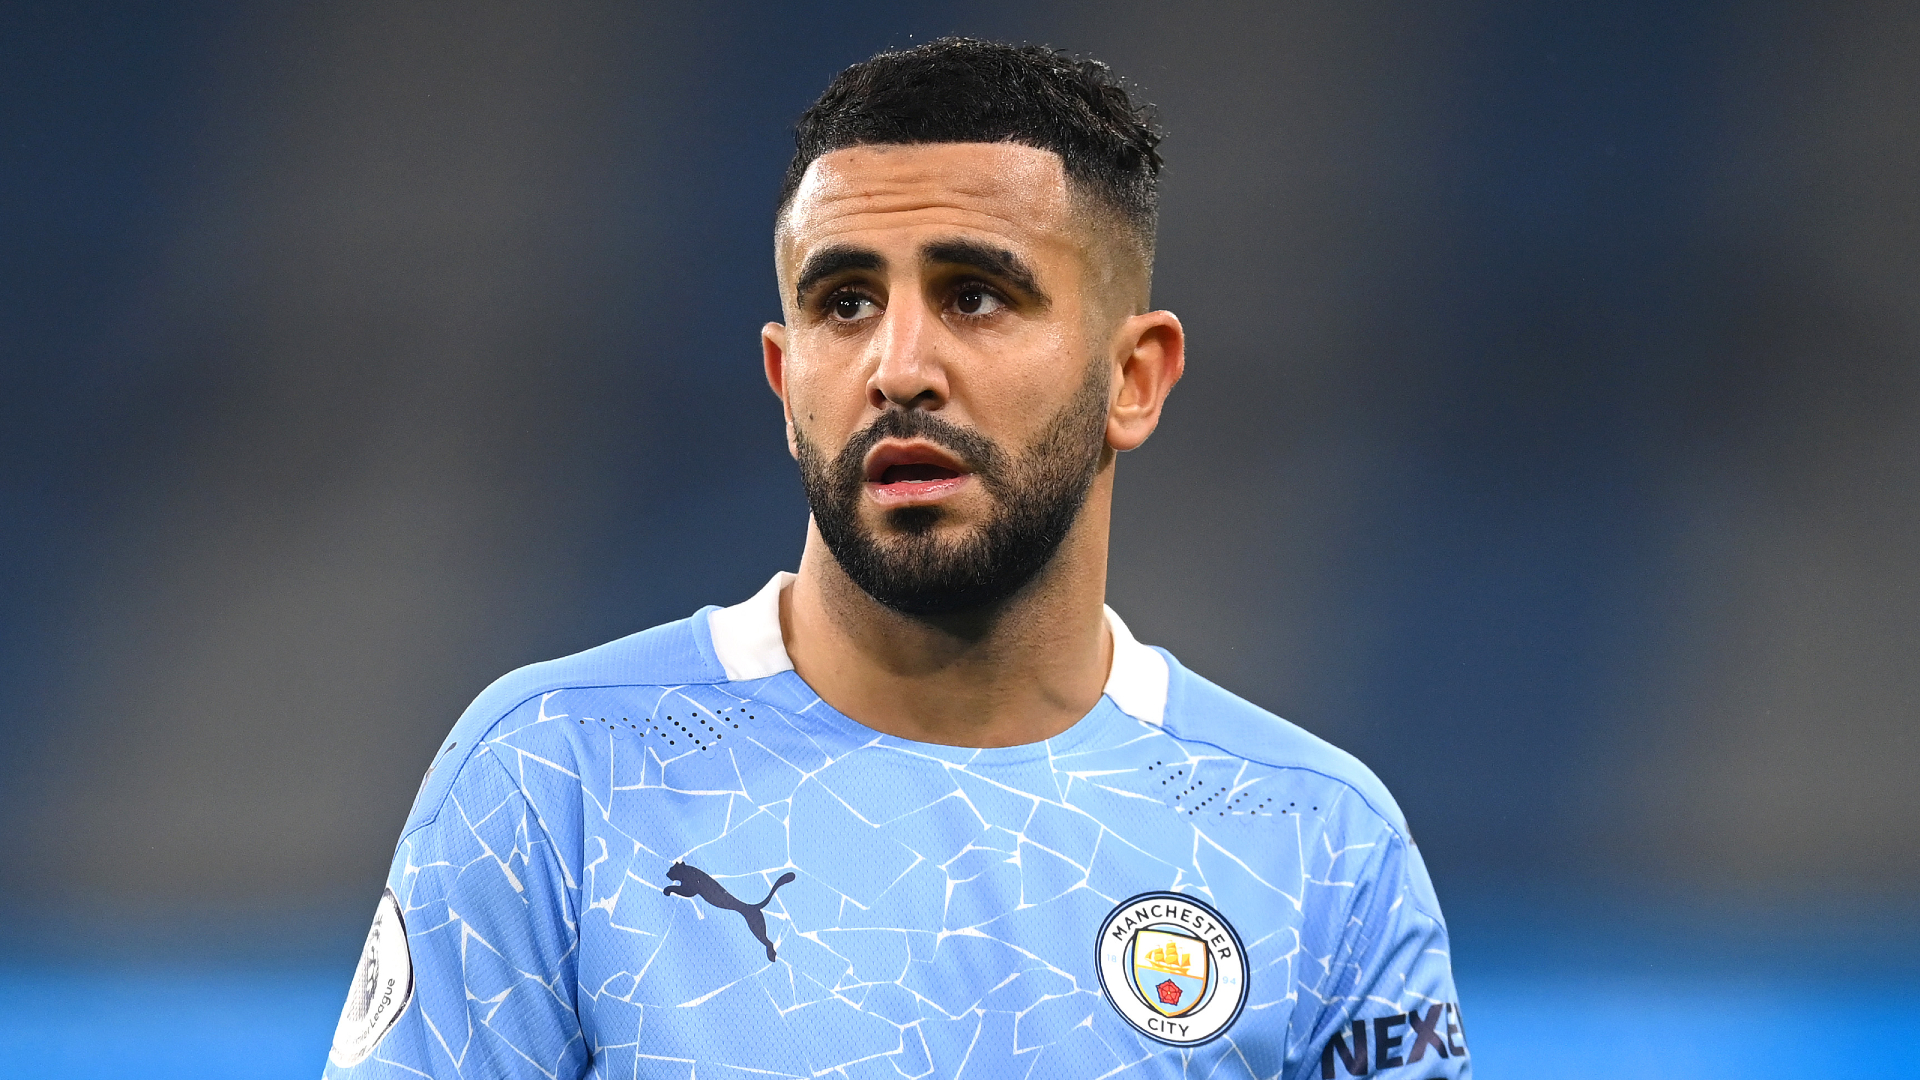 'I don't see higher than Man City' - Mahrez stresses commitment as he pursues Etihad goals